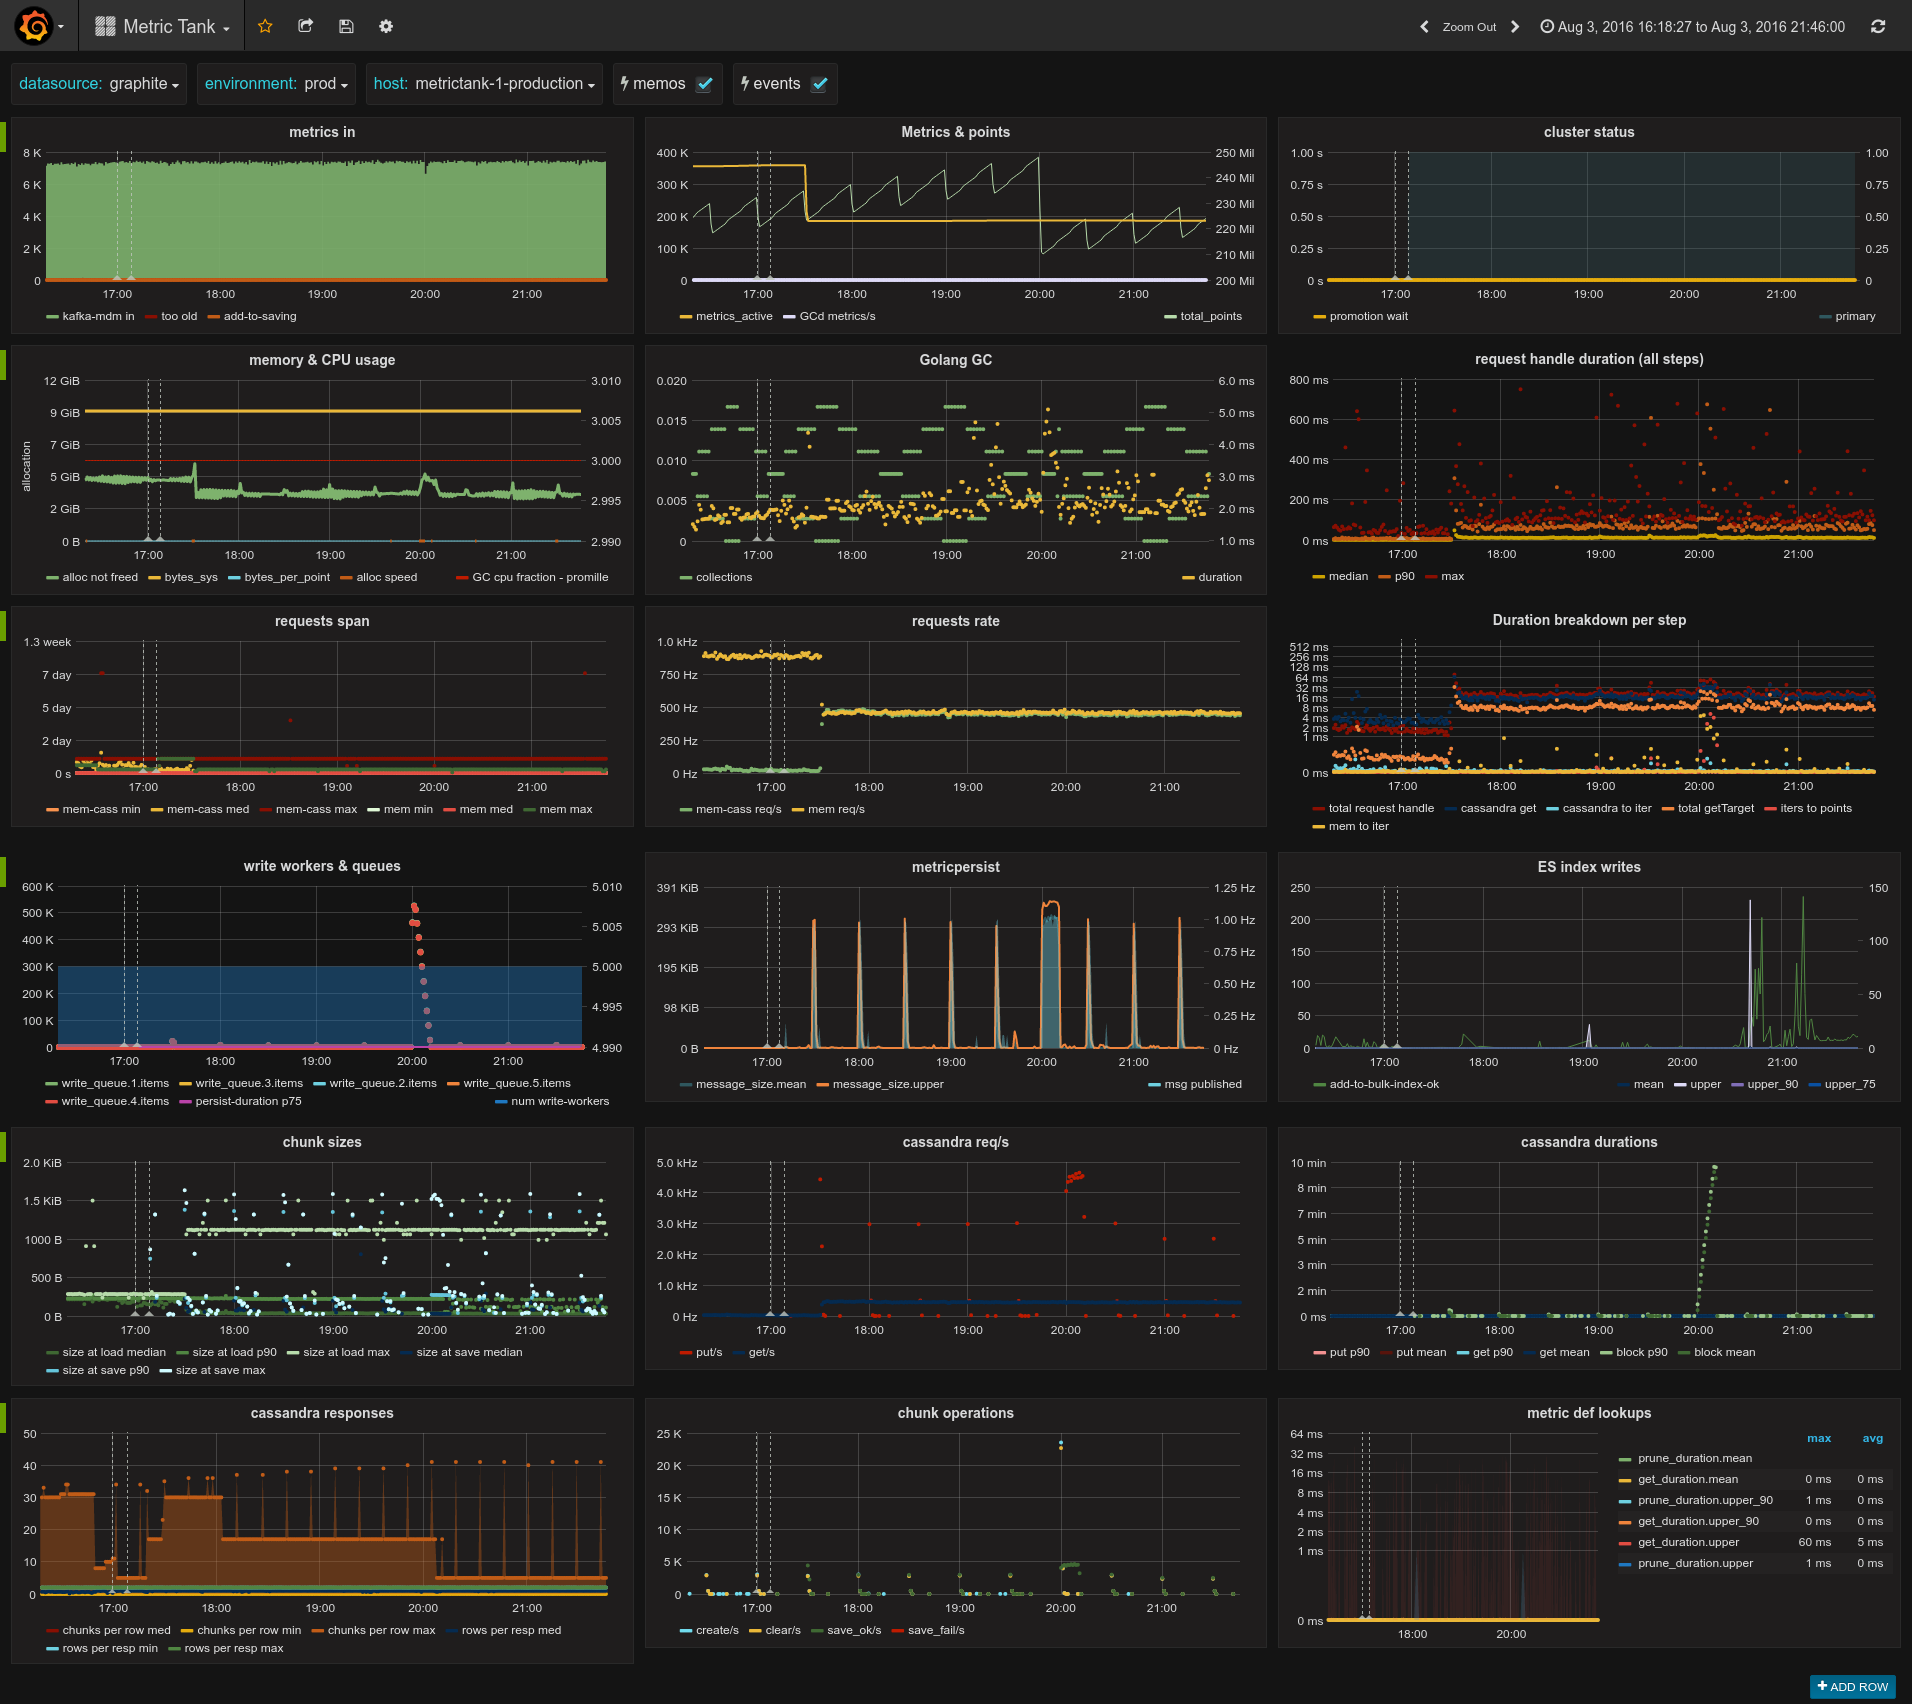 metrictank/quick-start-docker md at master · grafana